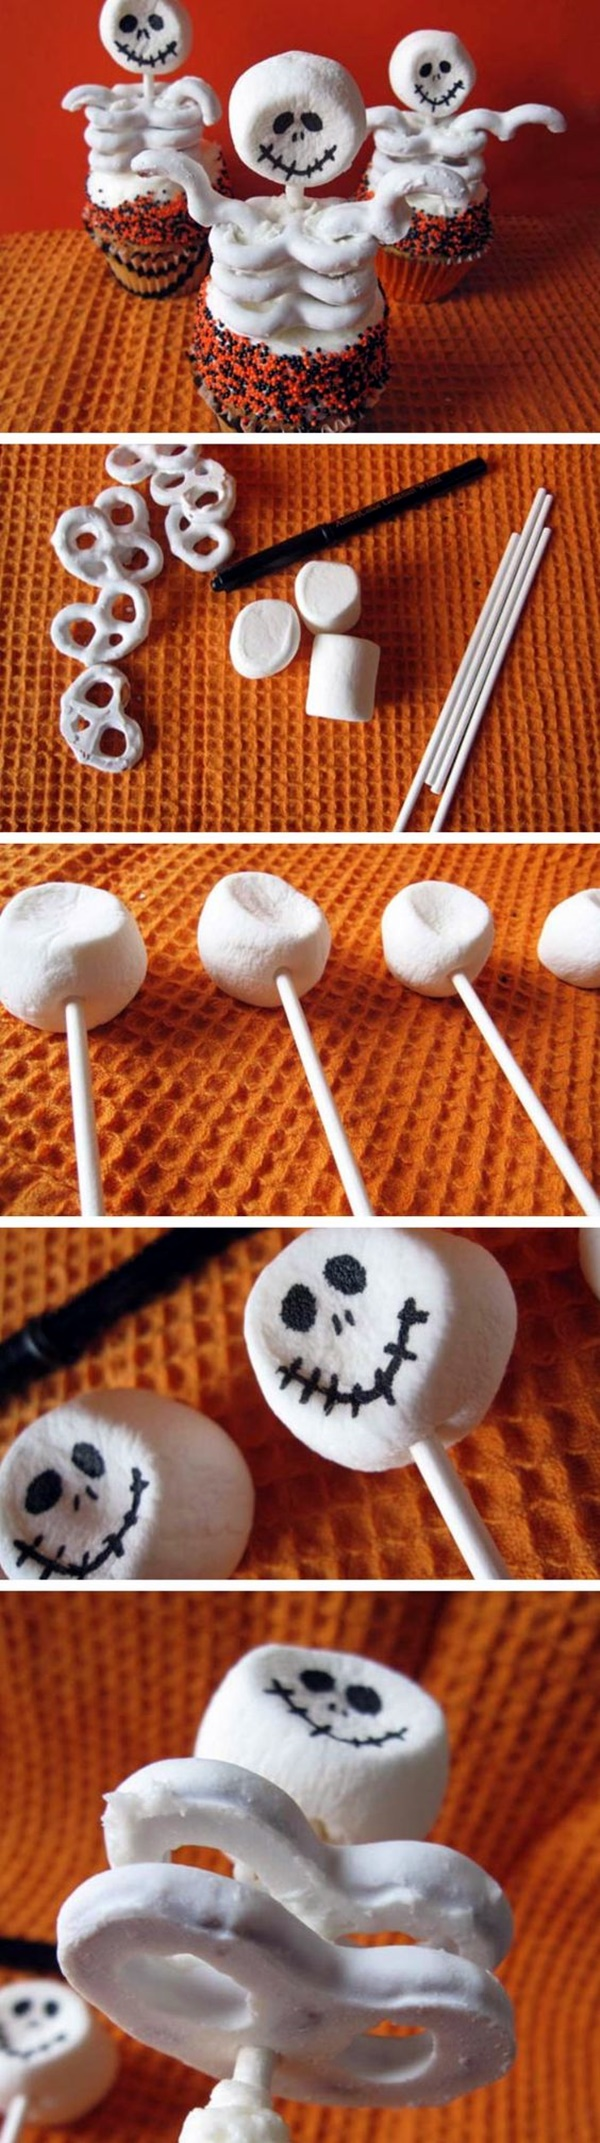 diy-halloween-craft-ideas-for-kids-11